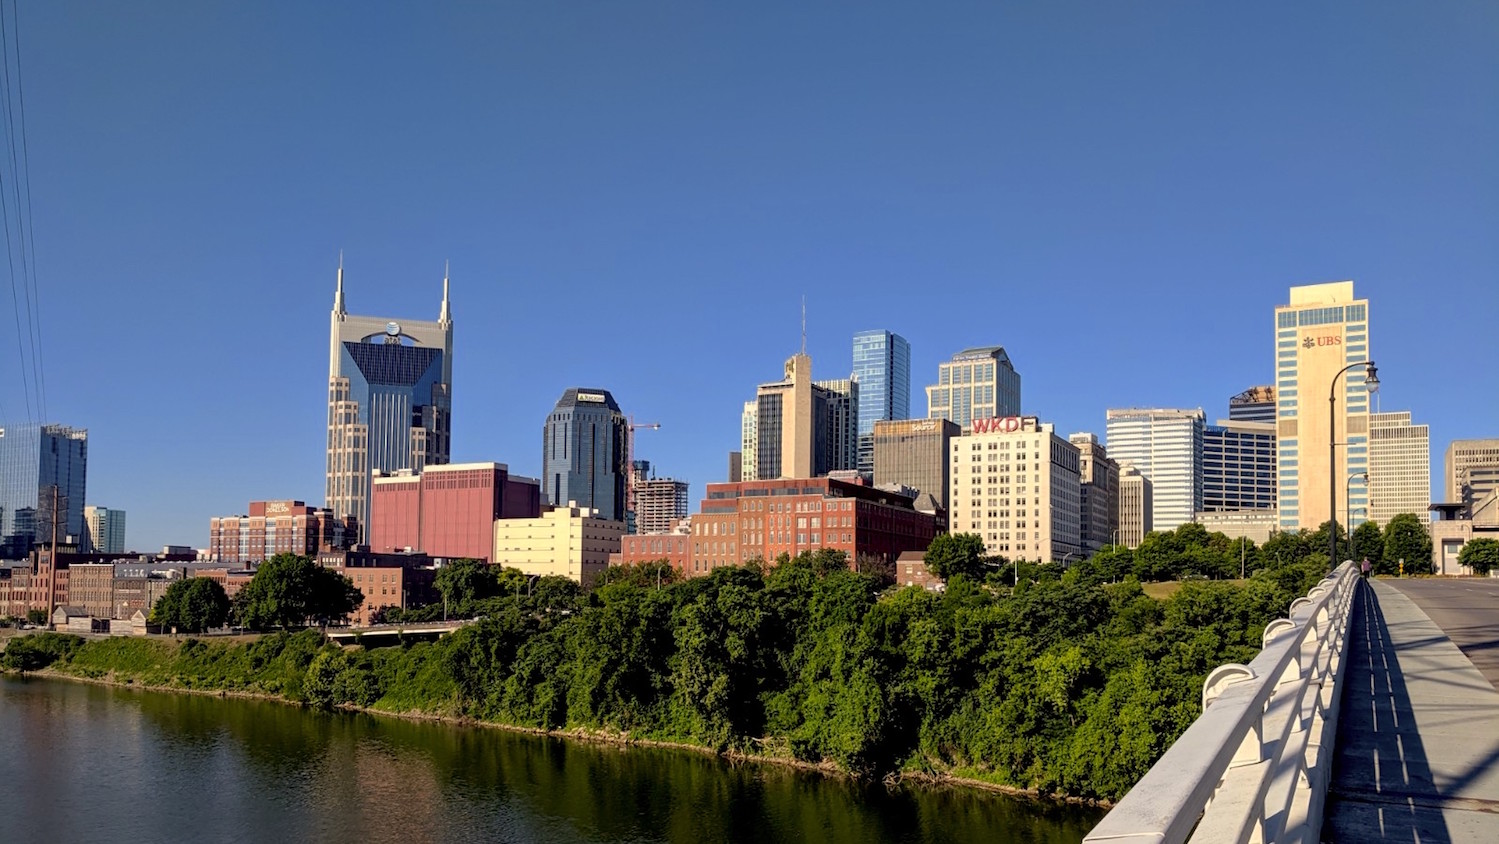 View of Nashville skyline over the river in the sun